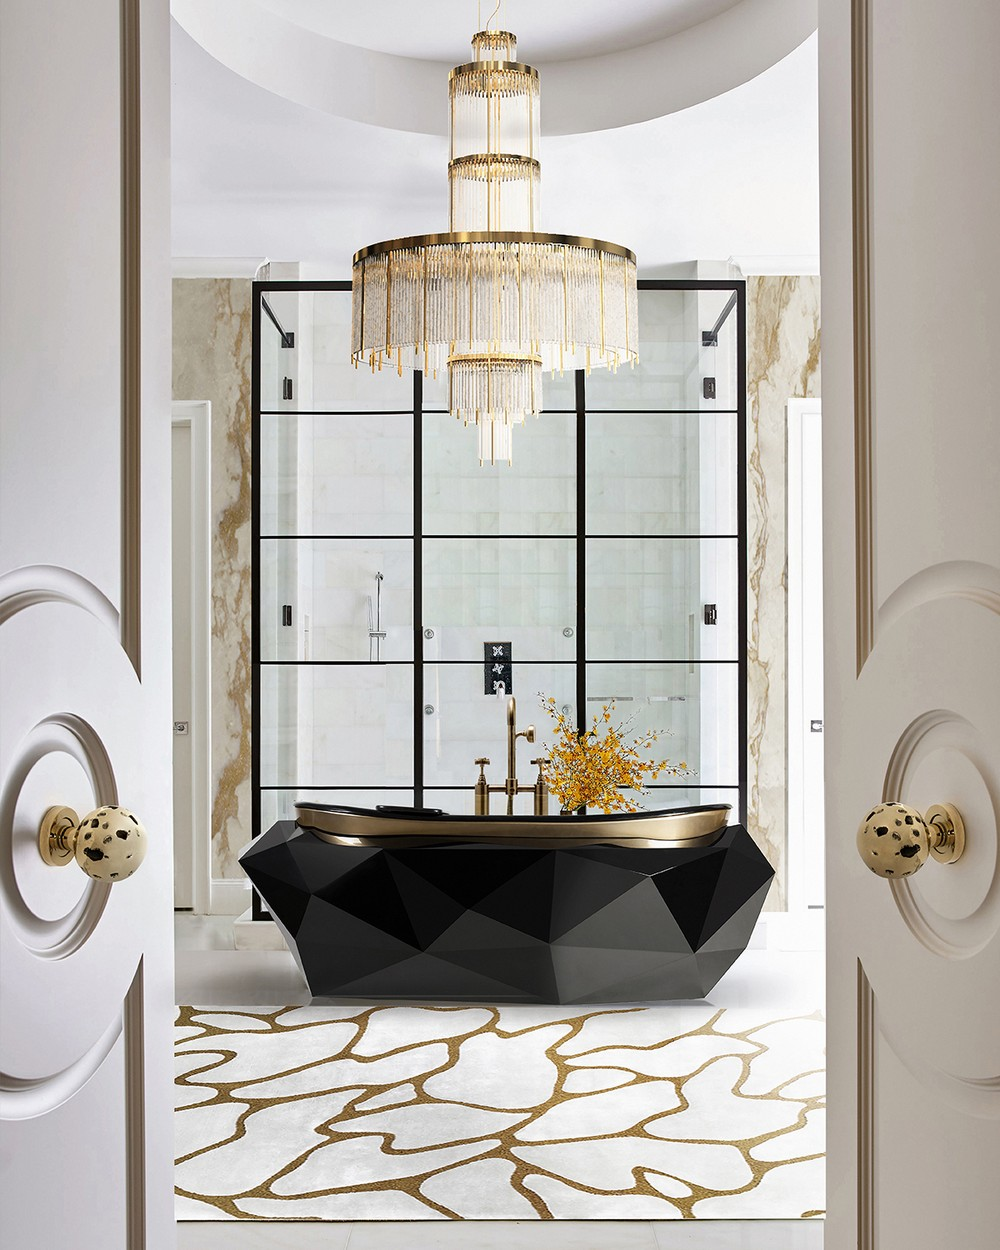 5 Bathroom Decor Ideas to Dramatically Upgrade Your Home Interiors 2